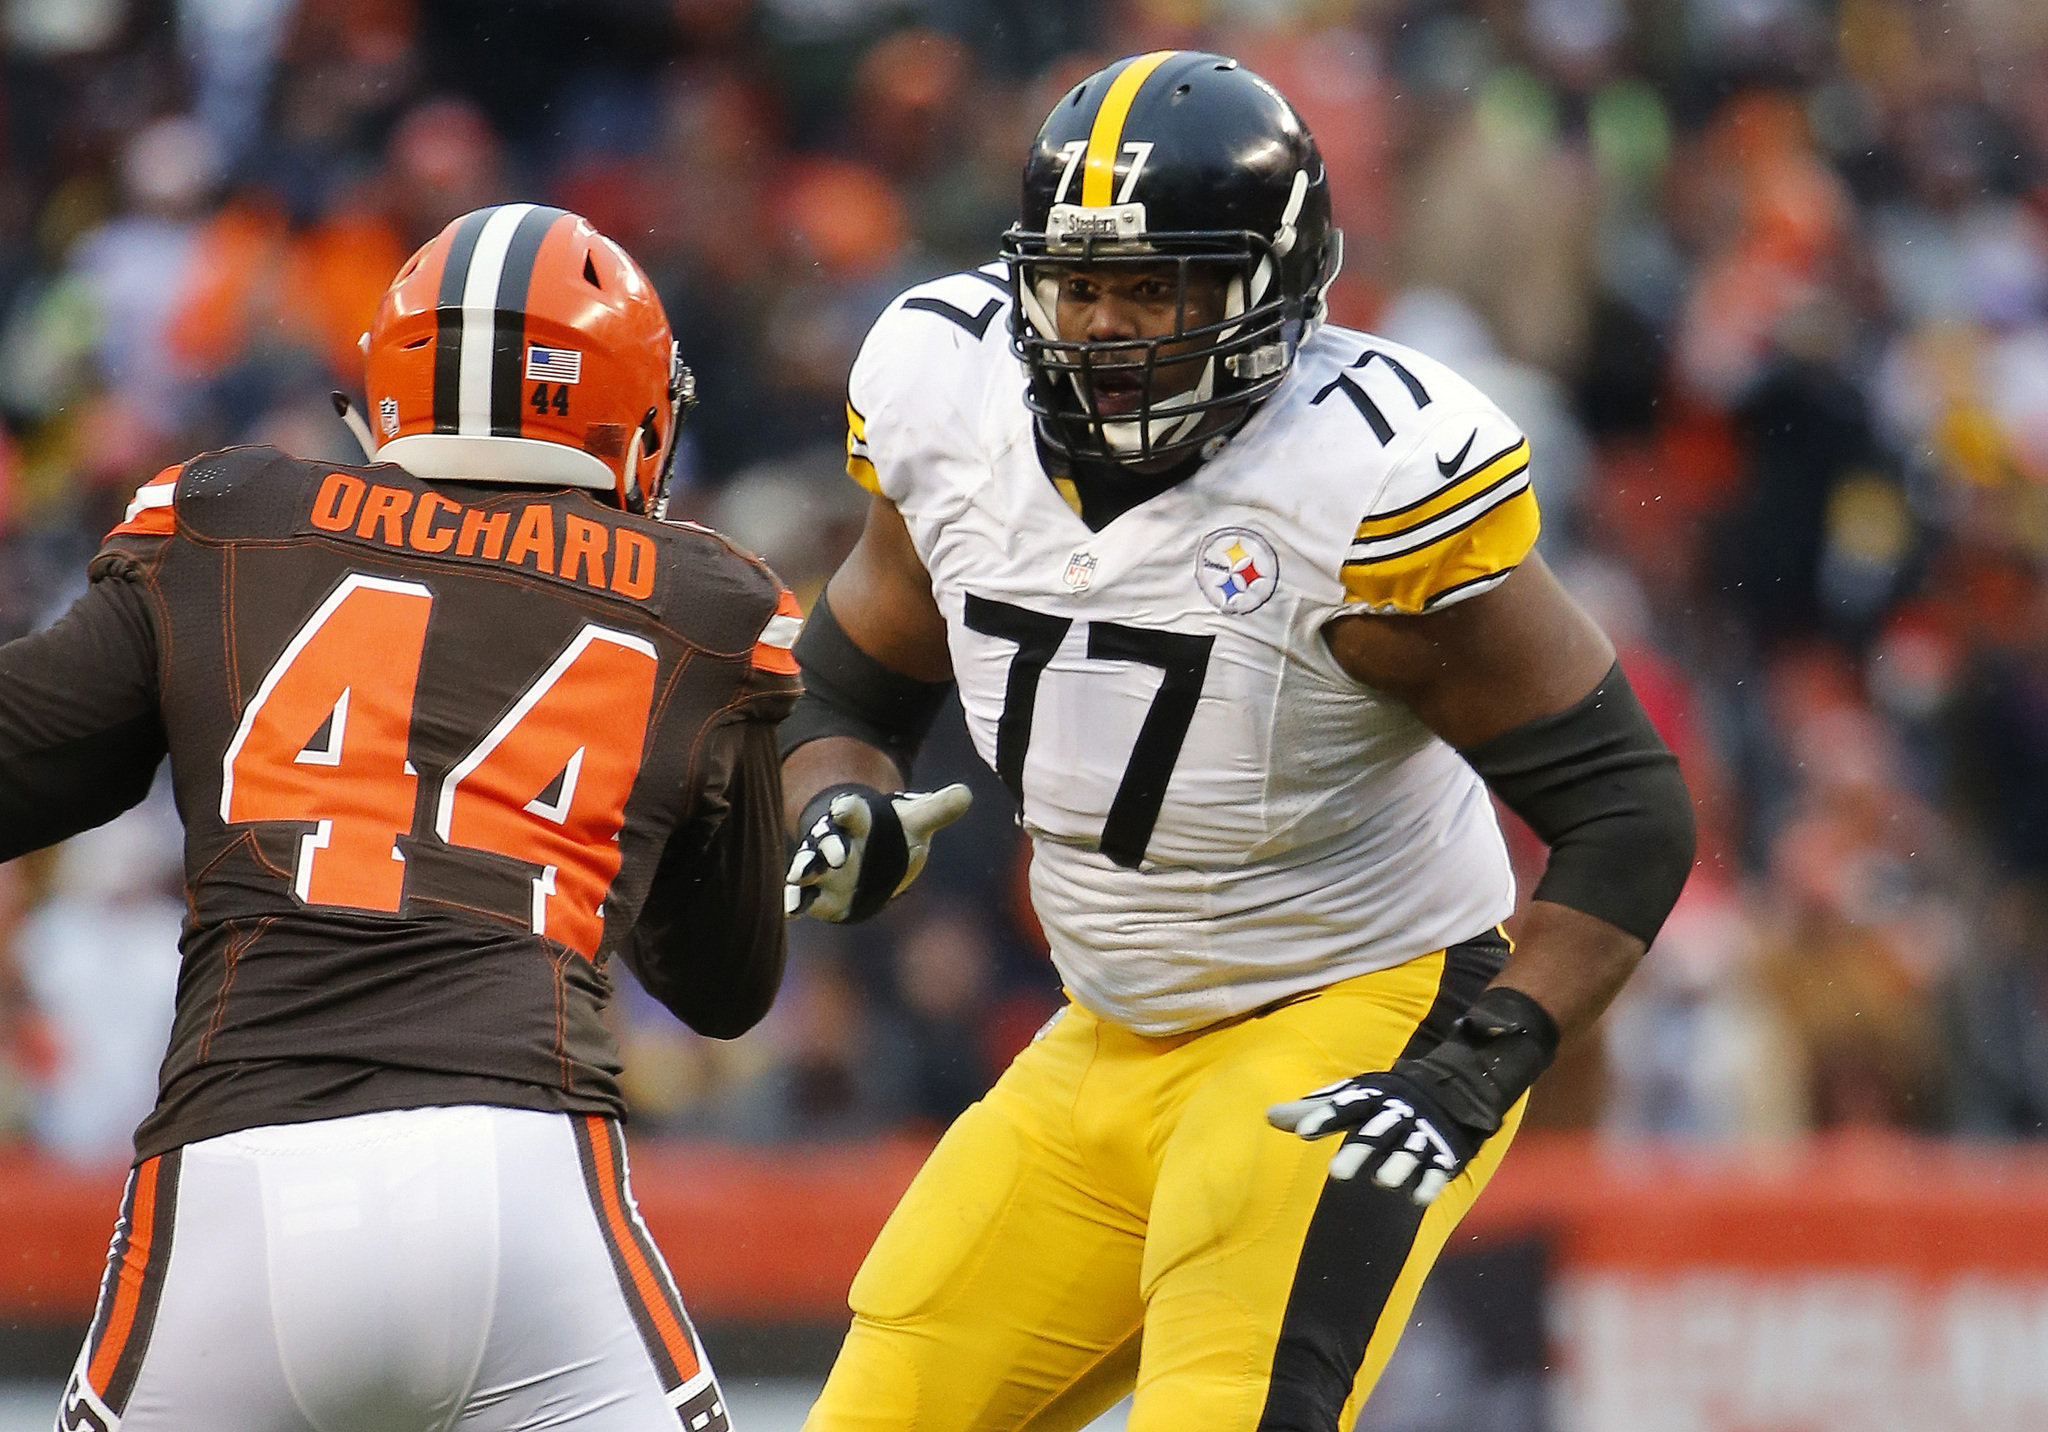 Pittsburgh Steelers OT Marcus Gilbert facing lawsuit